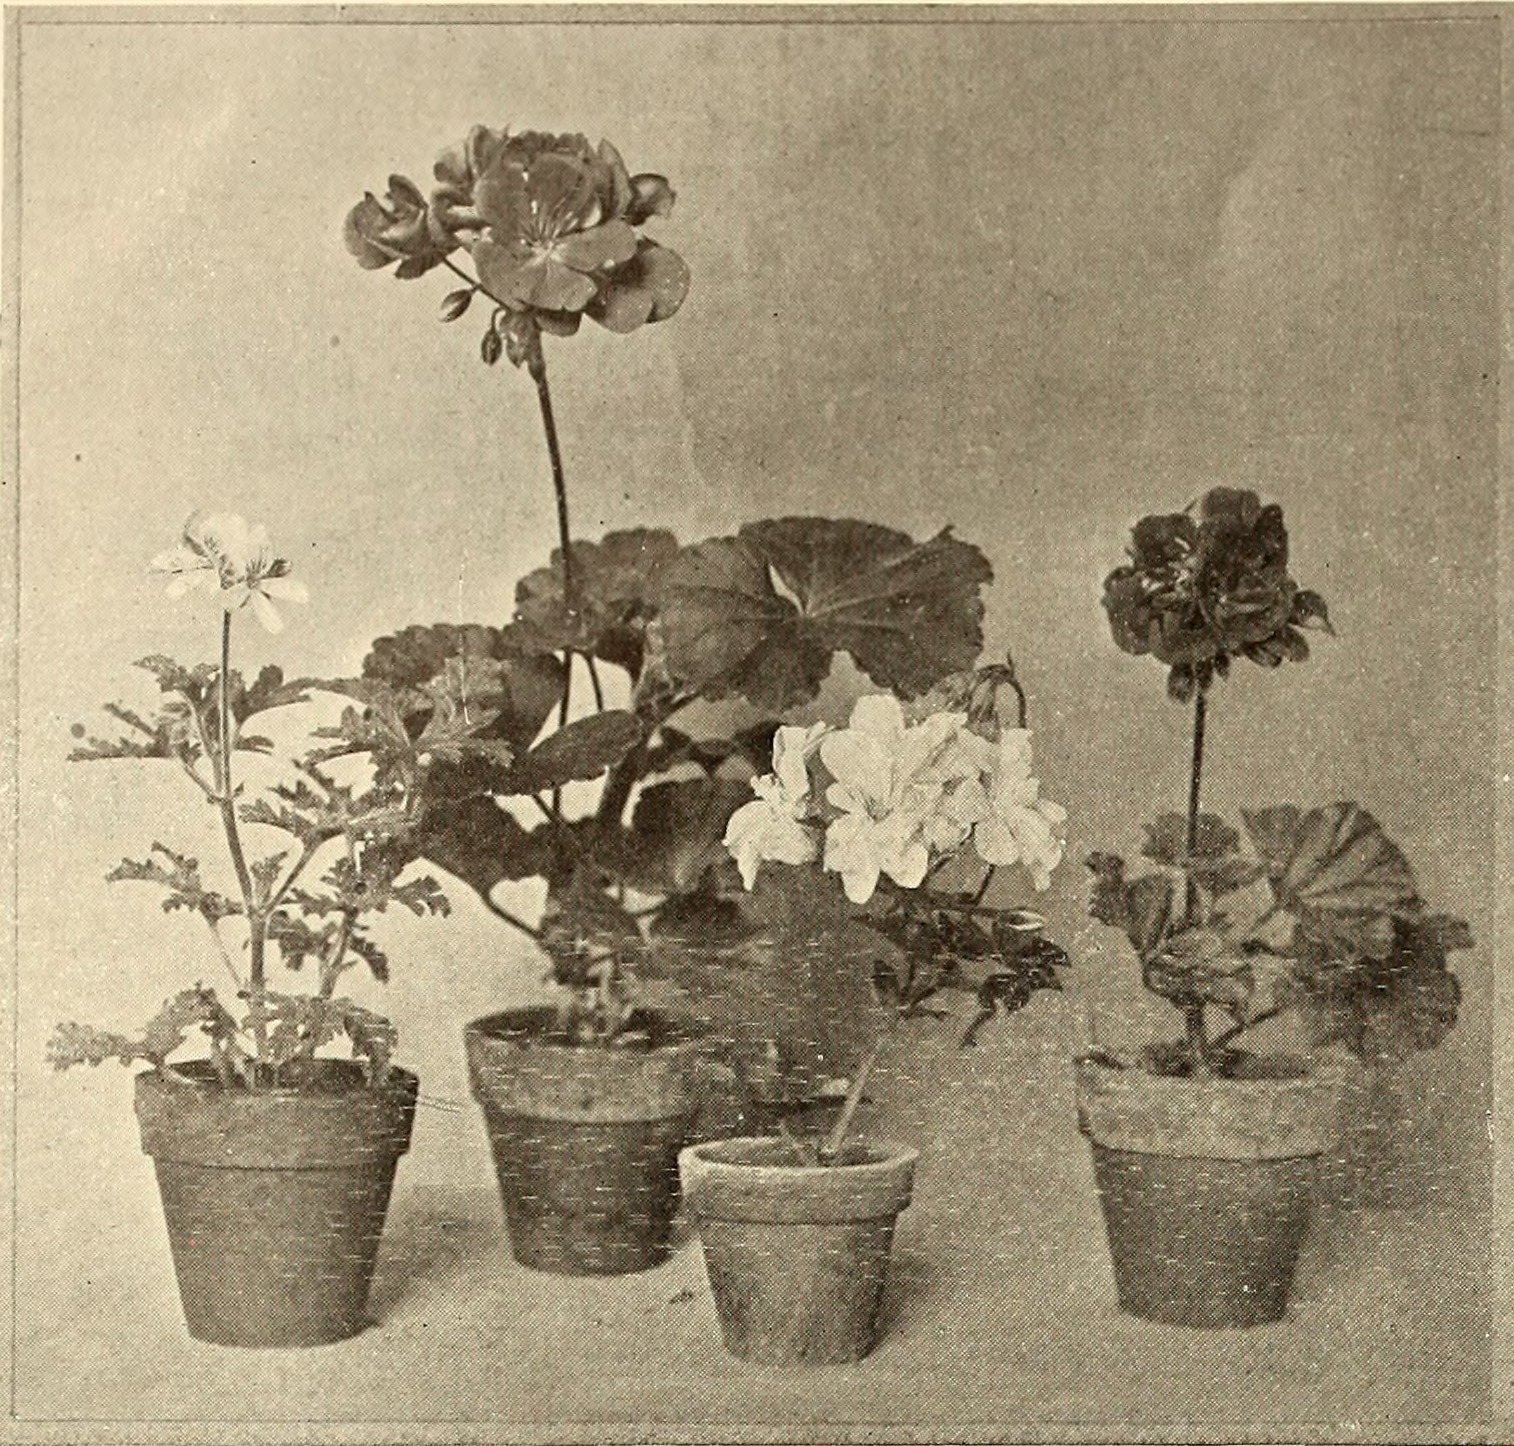 leaf-forms, all very attractive, but more recent introductions have shown improvements in the plant form and size of flower,—the two objectionable characteristics